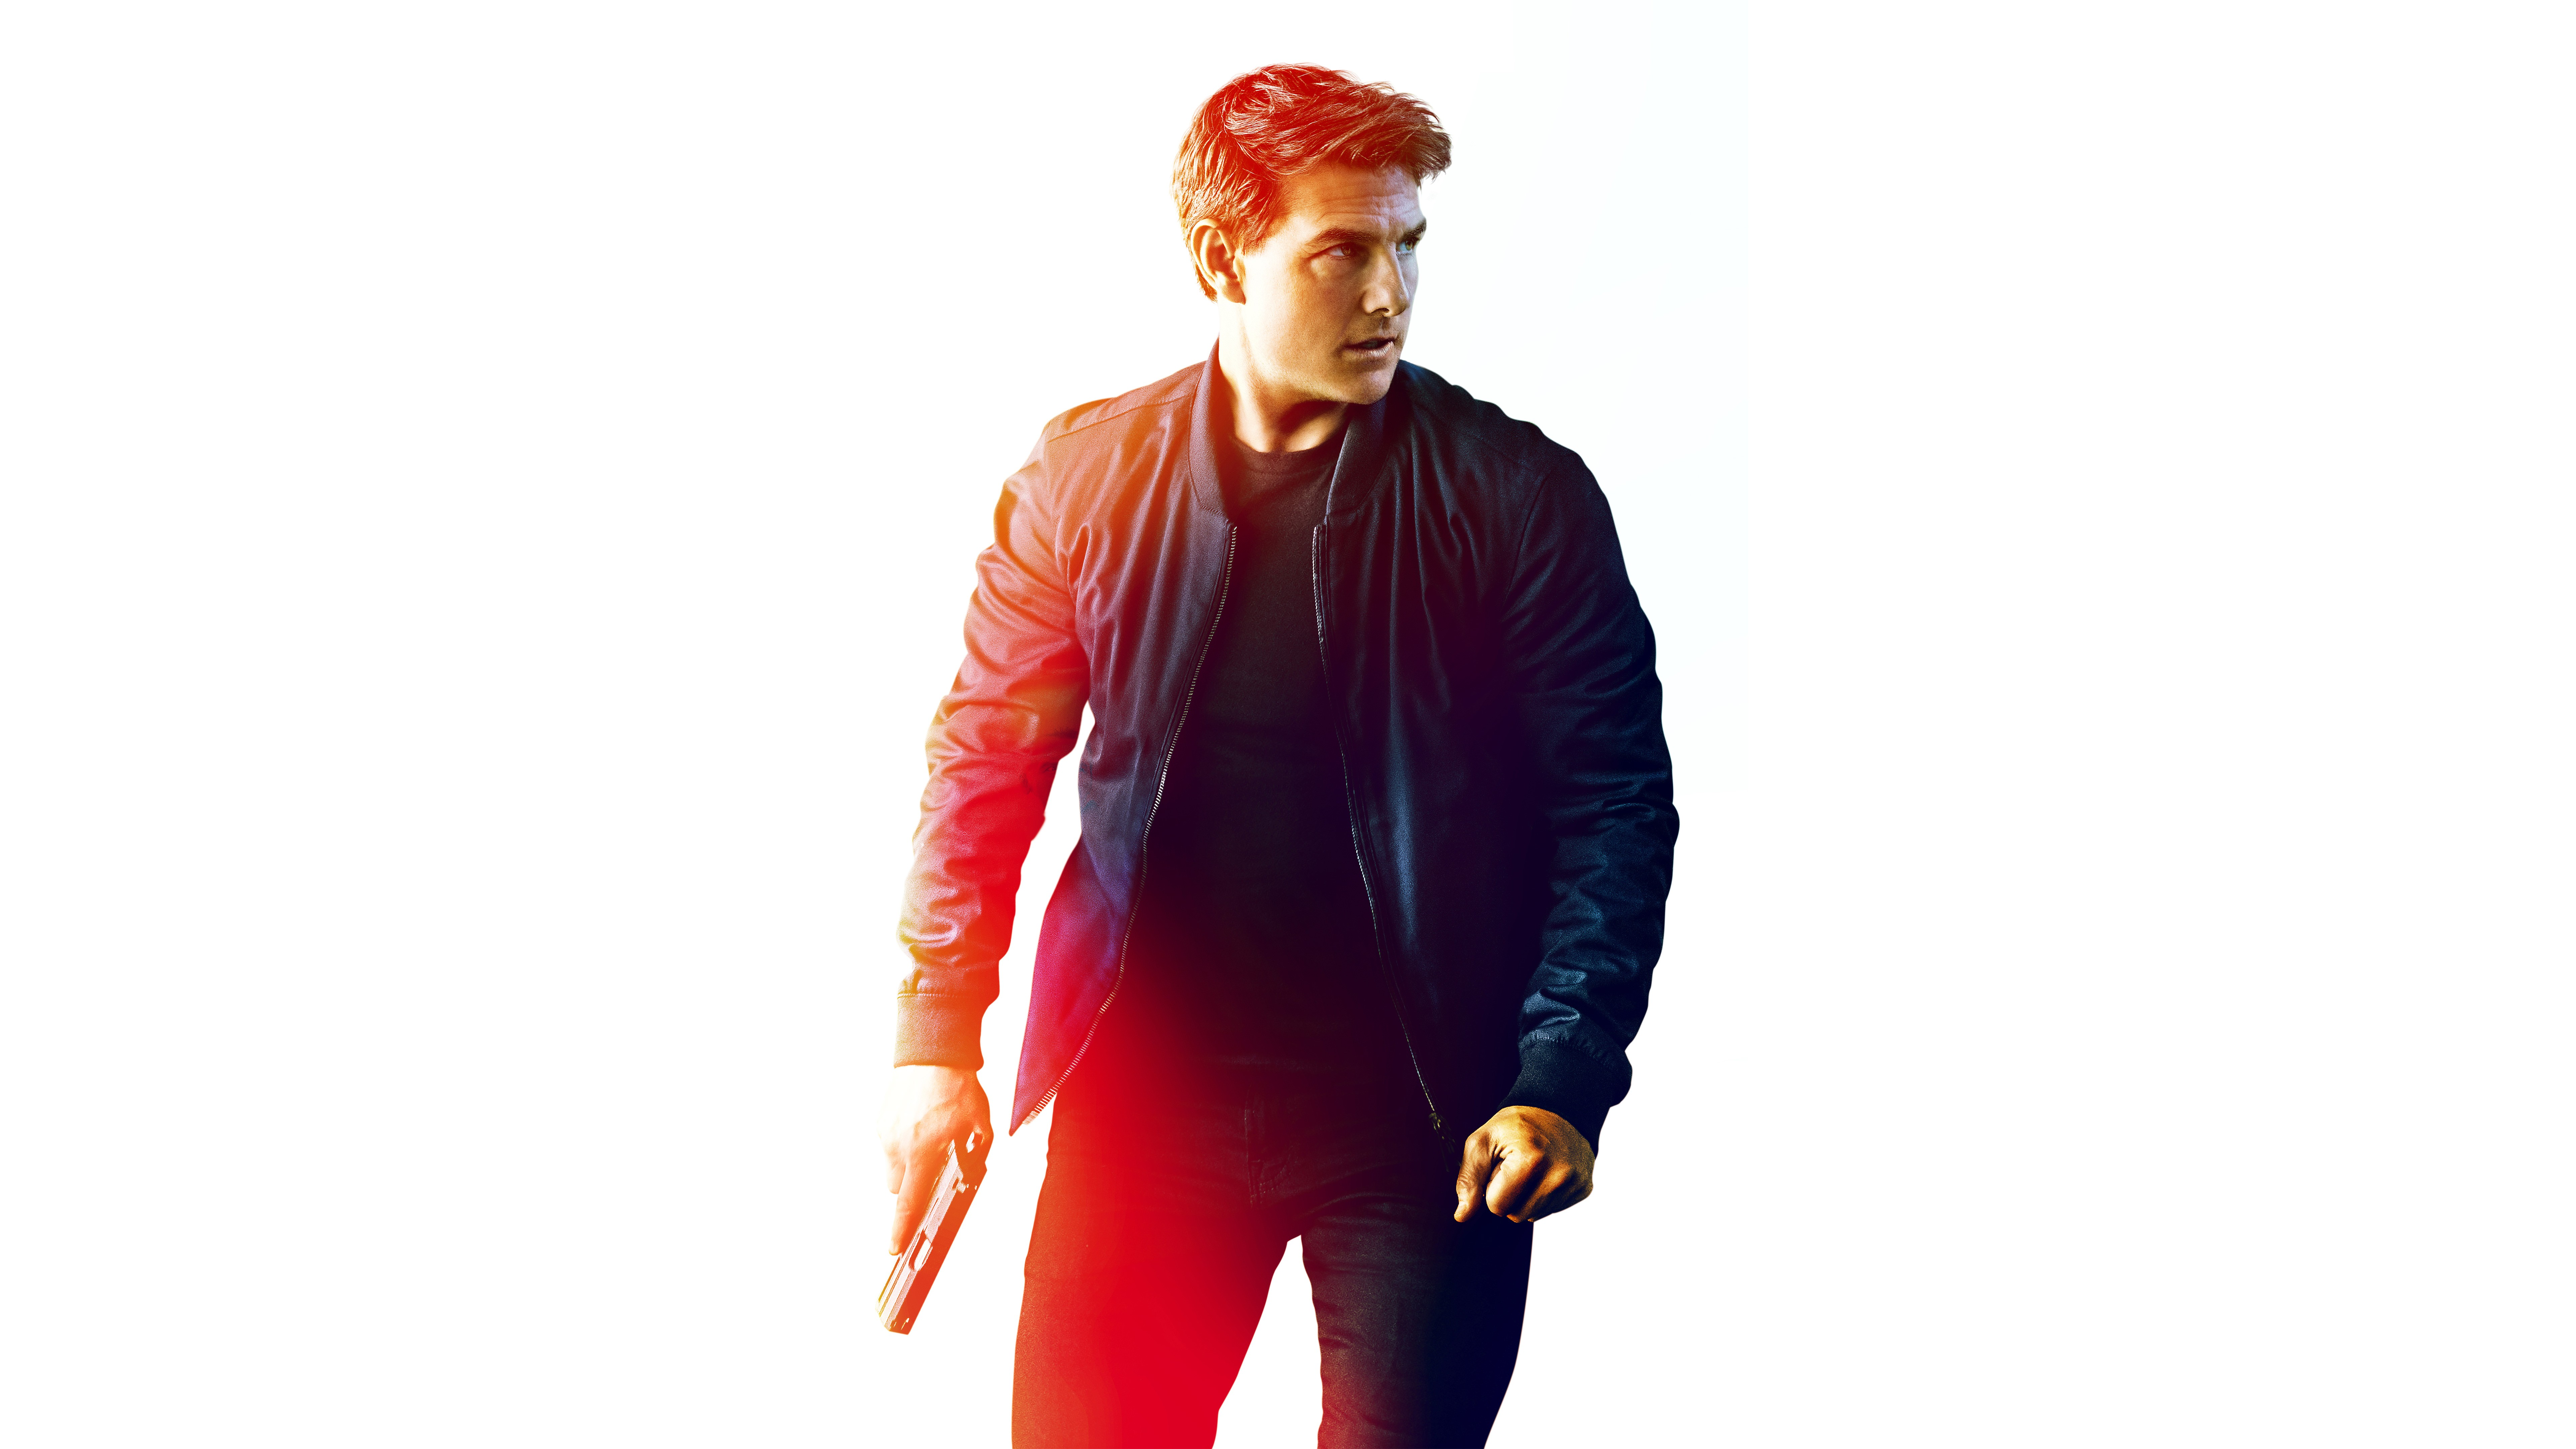 Fall Laptop Wallpaper Wallpaper Mission Impossible Fallout Poster Tom